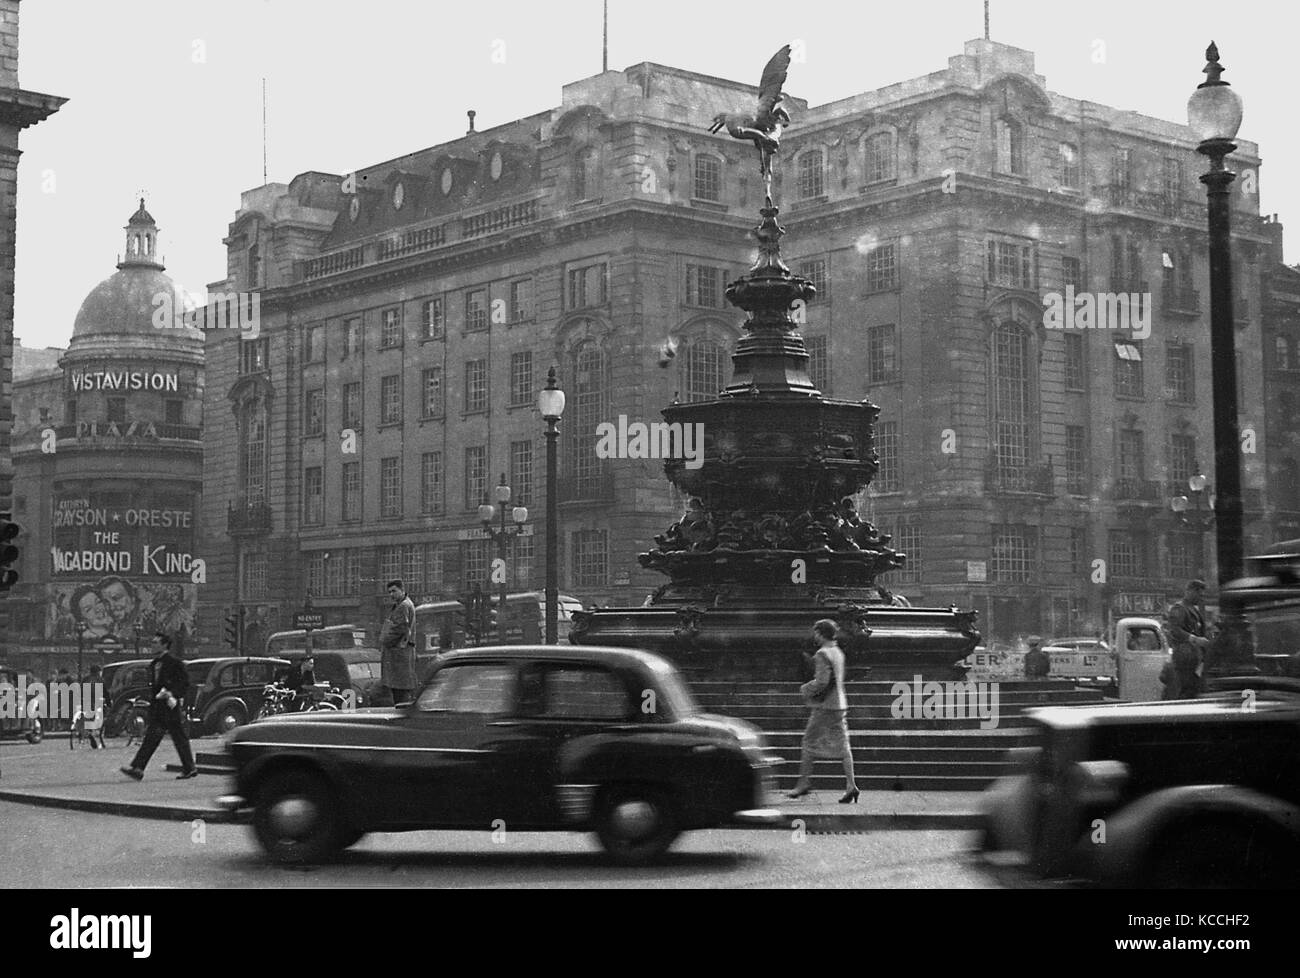 1956, historical picture showing cars and people at the Eros statue at Piccadilly Circus, London, England, UK with Stock Photo